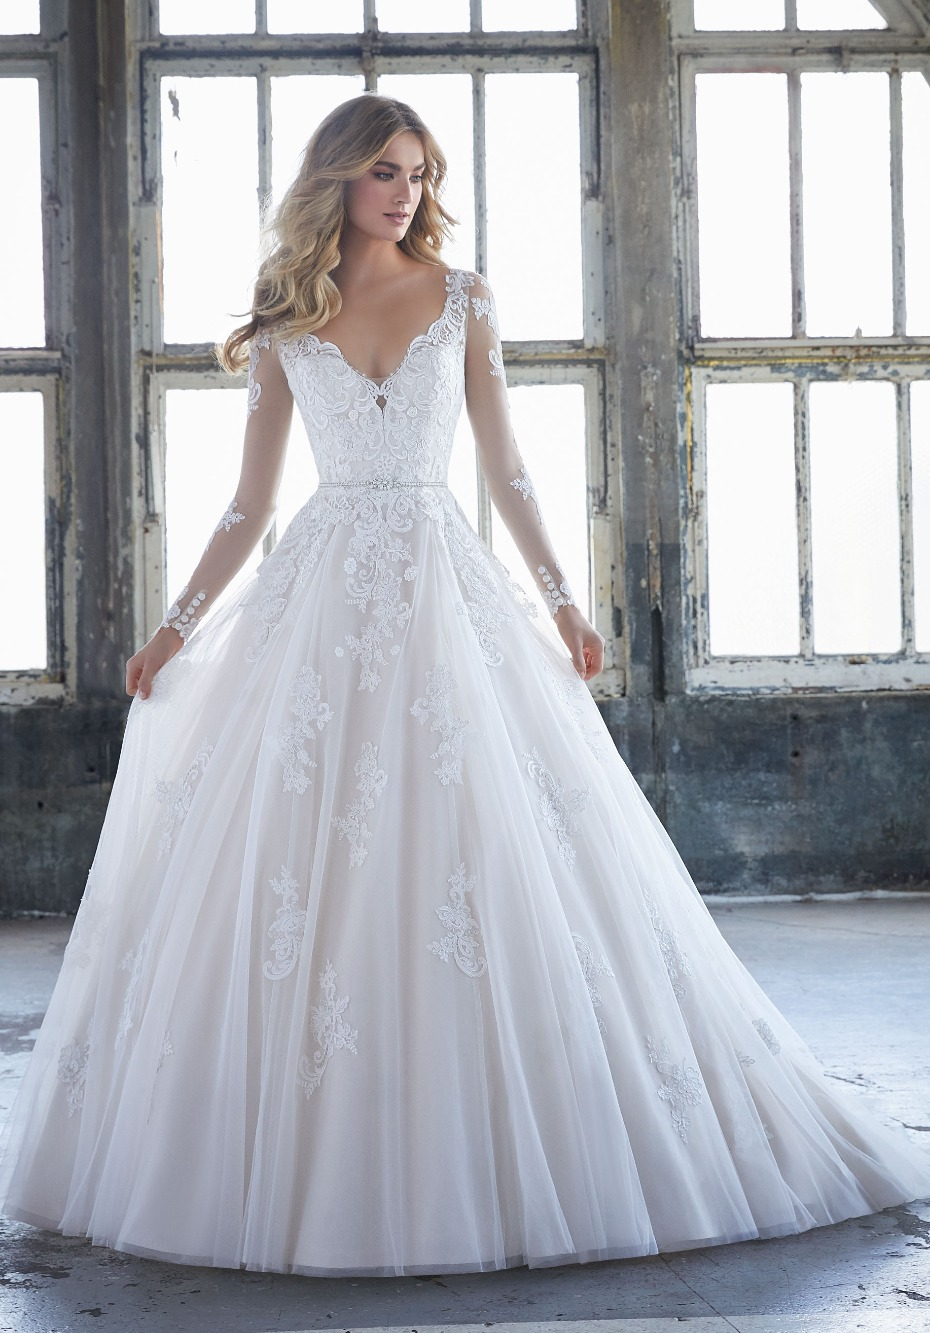 Morilee Trunk Show at Terry Costa